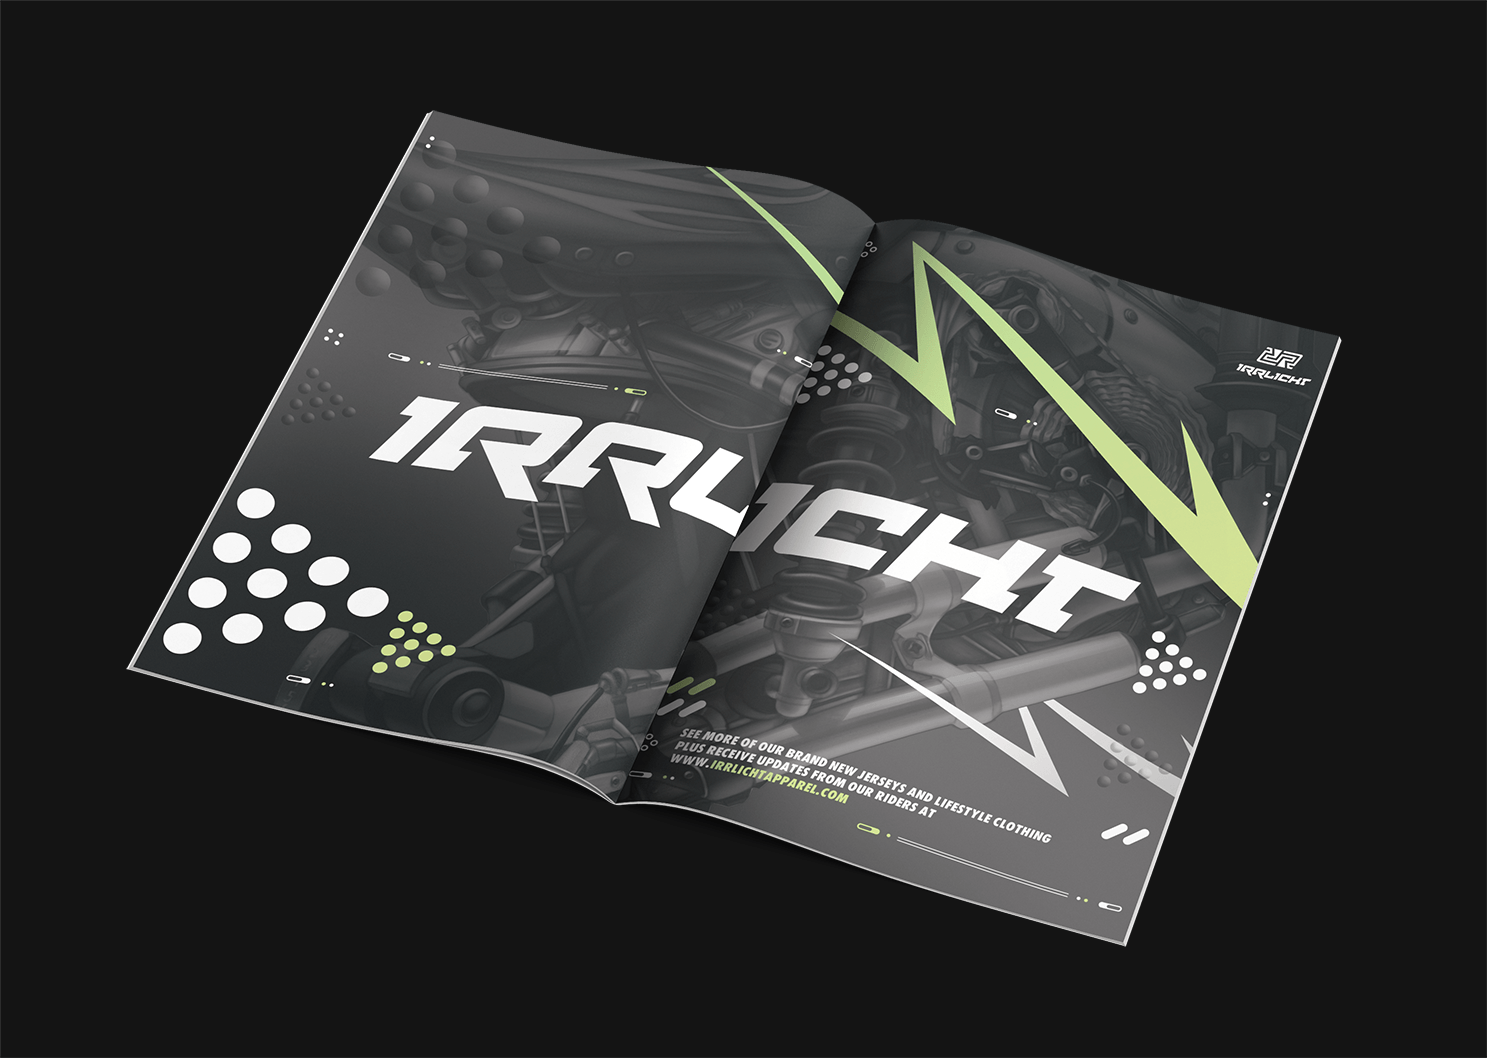 Redkroft. – brand design studio Irrlicht – catching the true downhill spirit.